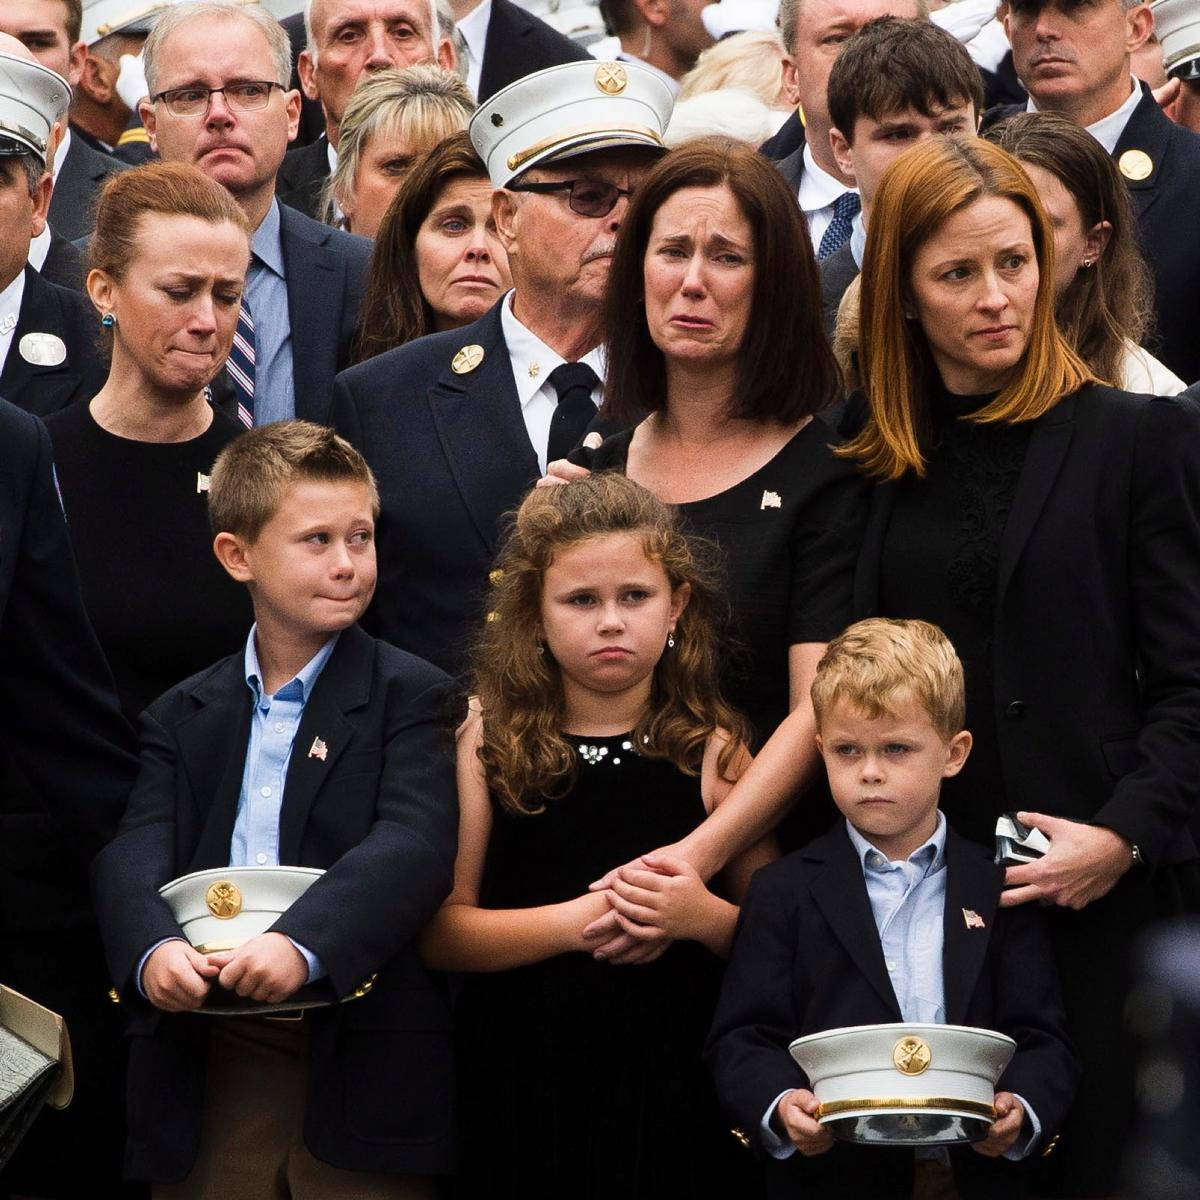 — Thousands attend funeral for @FDNY chief Michael Fahy